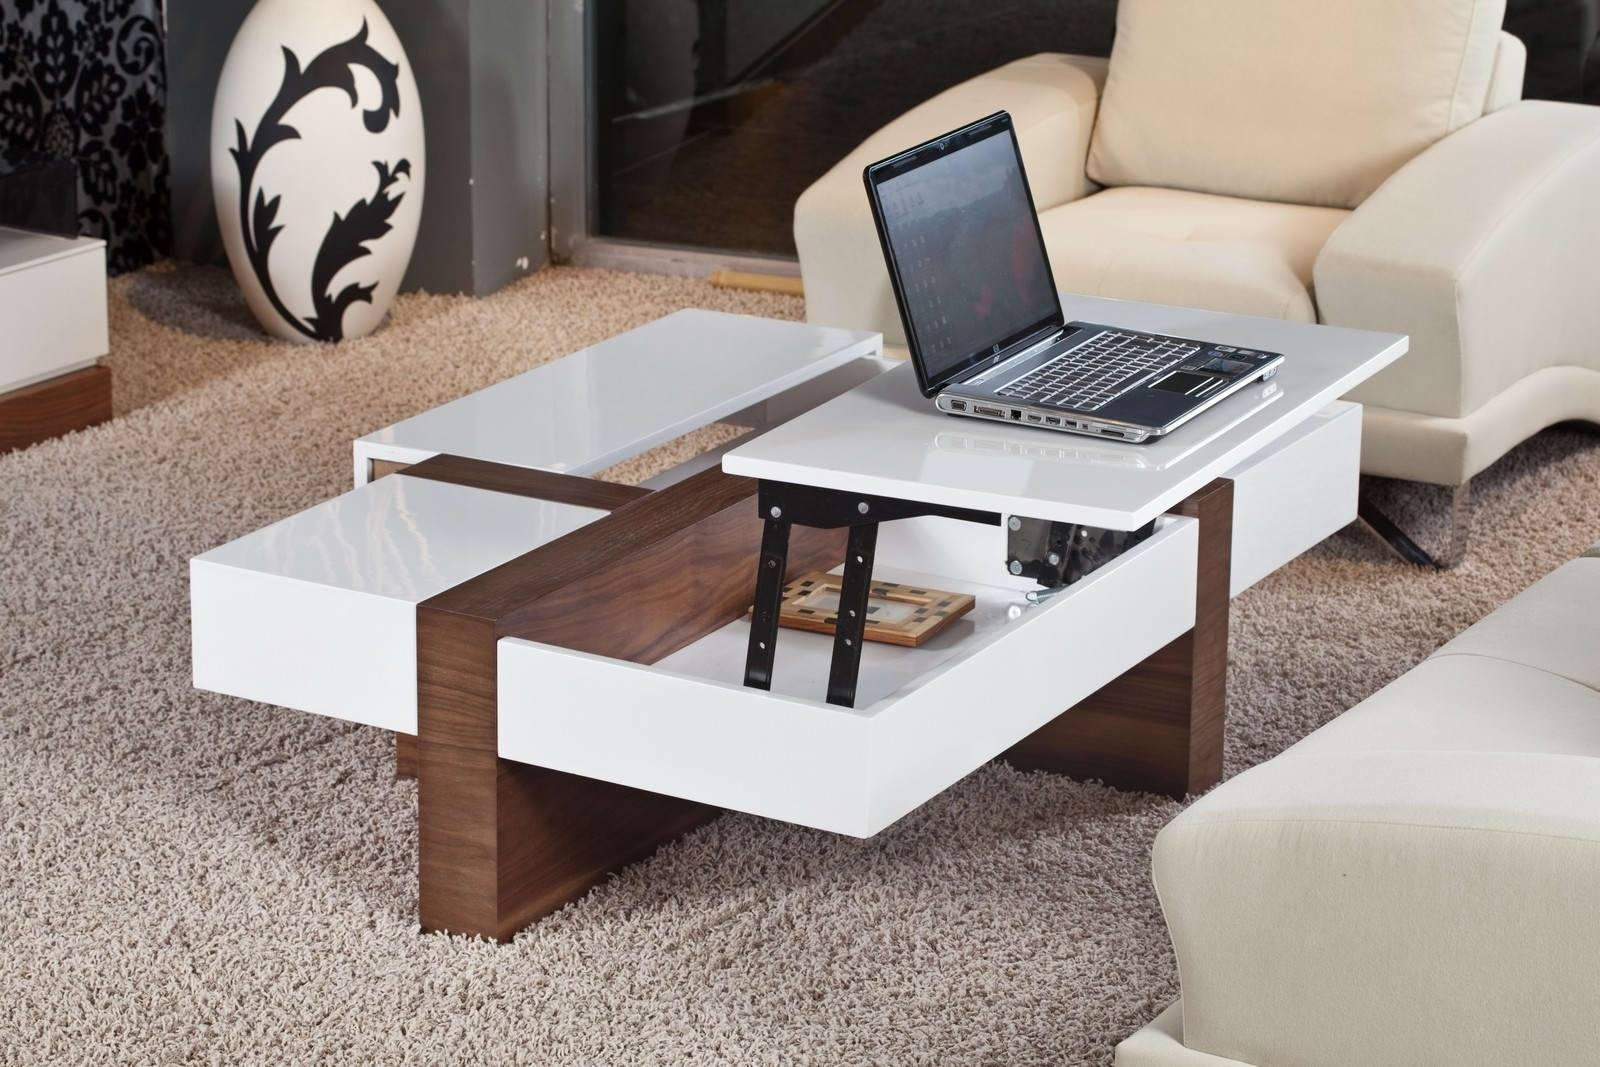 White Coffee Table With Storage - Pgr Home Design intended for White Coffee Tables With Storage (Image 26 of 30)